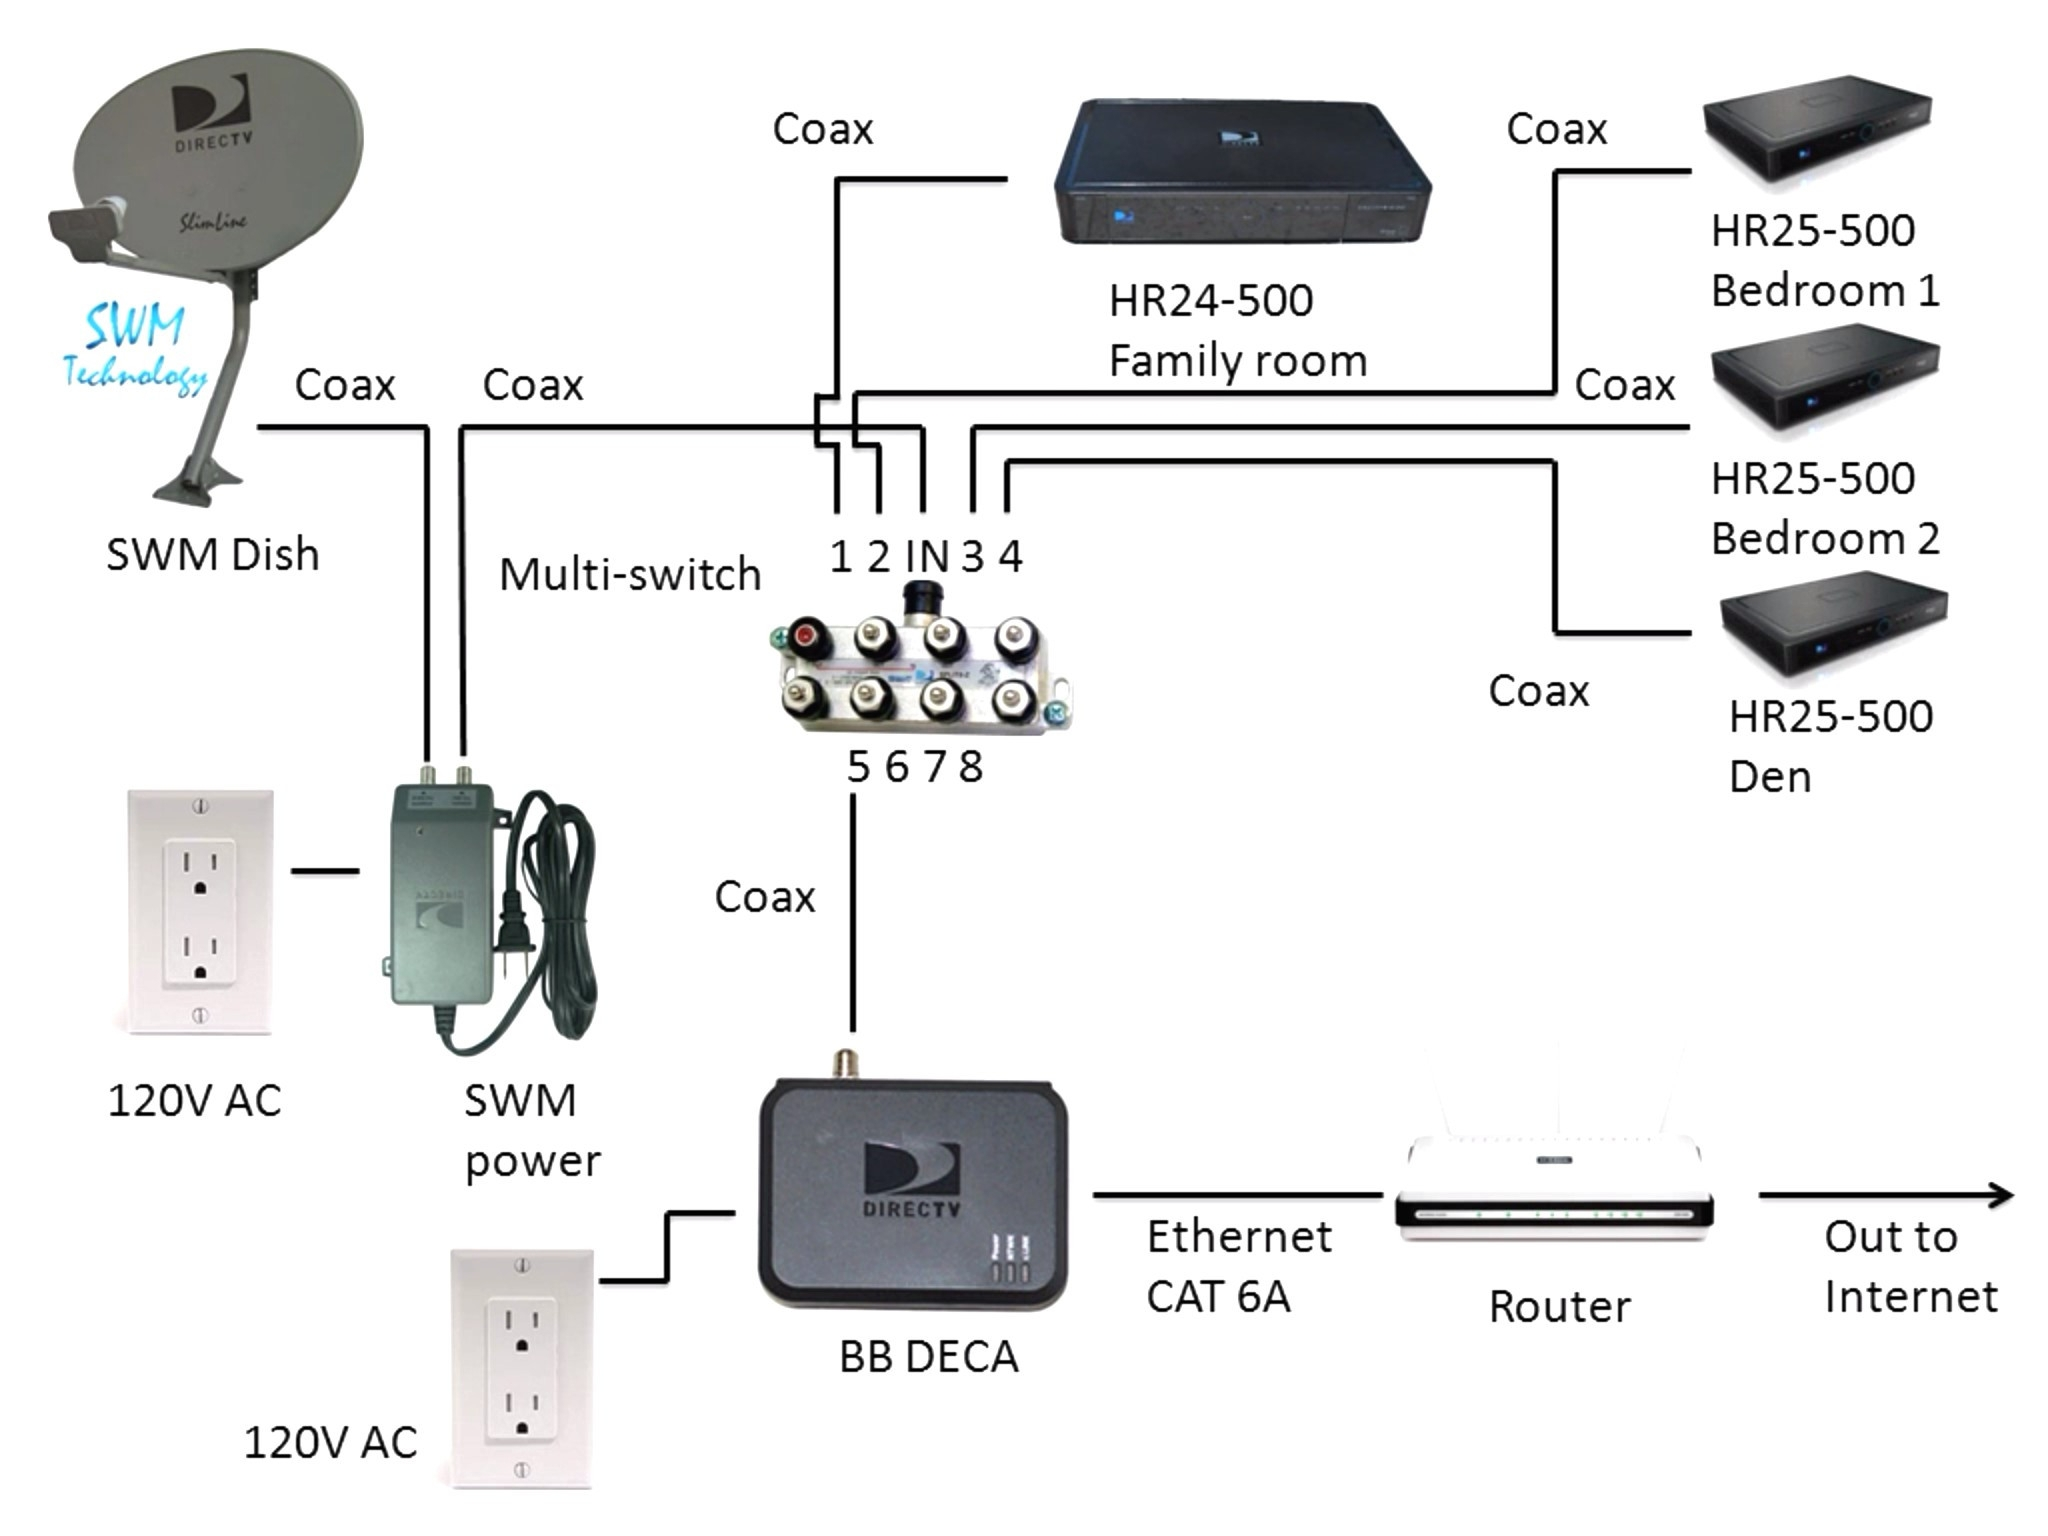 direct tv wiring diagram Download-Direct Tv Wiring Diagram Beautiful Directv Swm Diagrams And 5-n